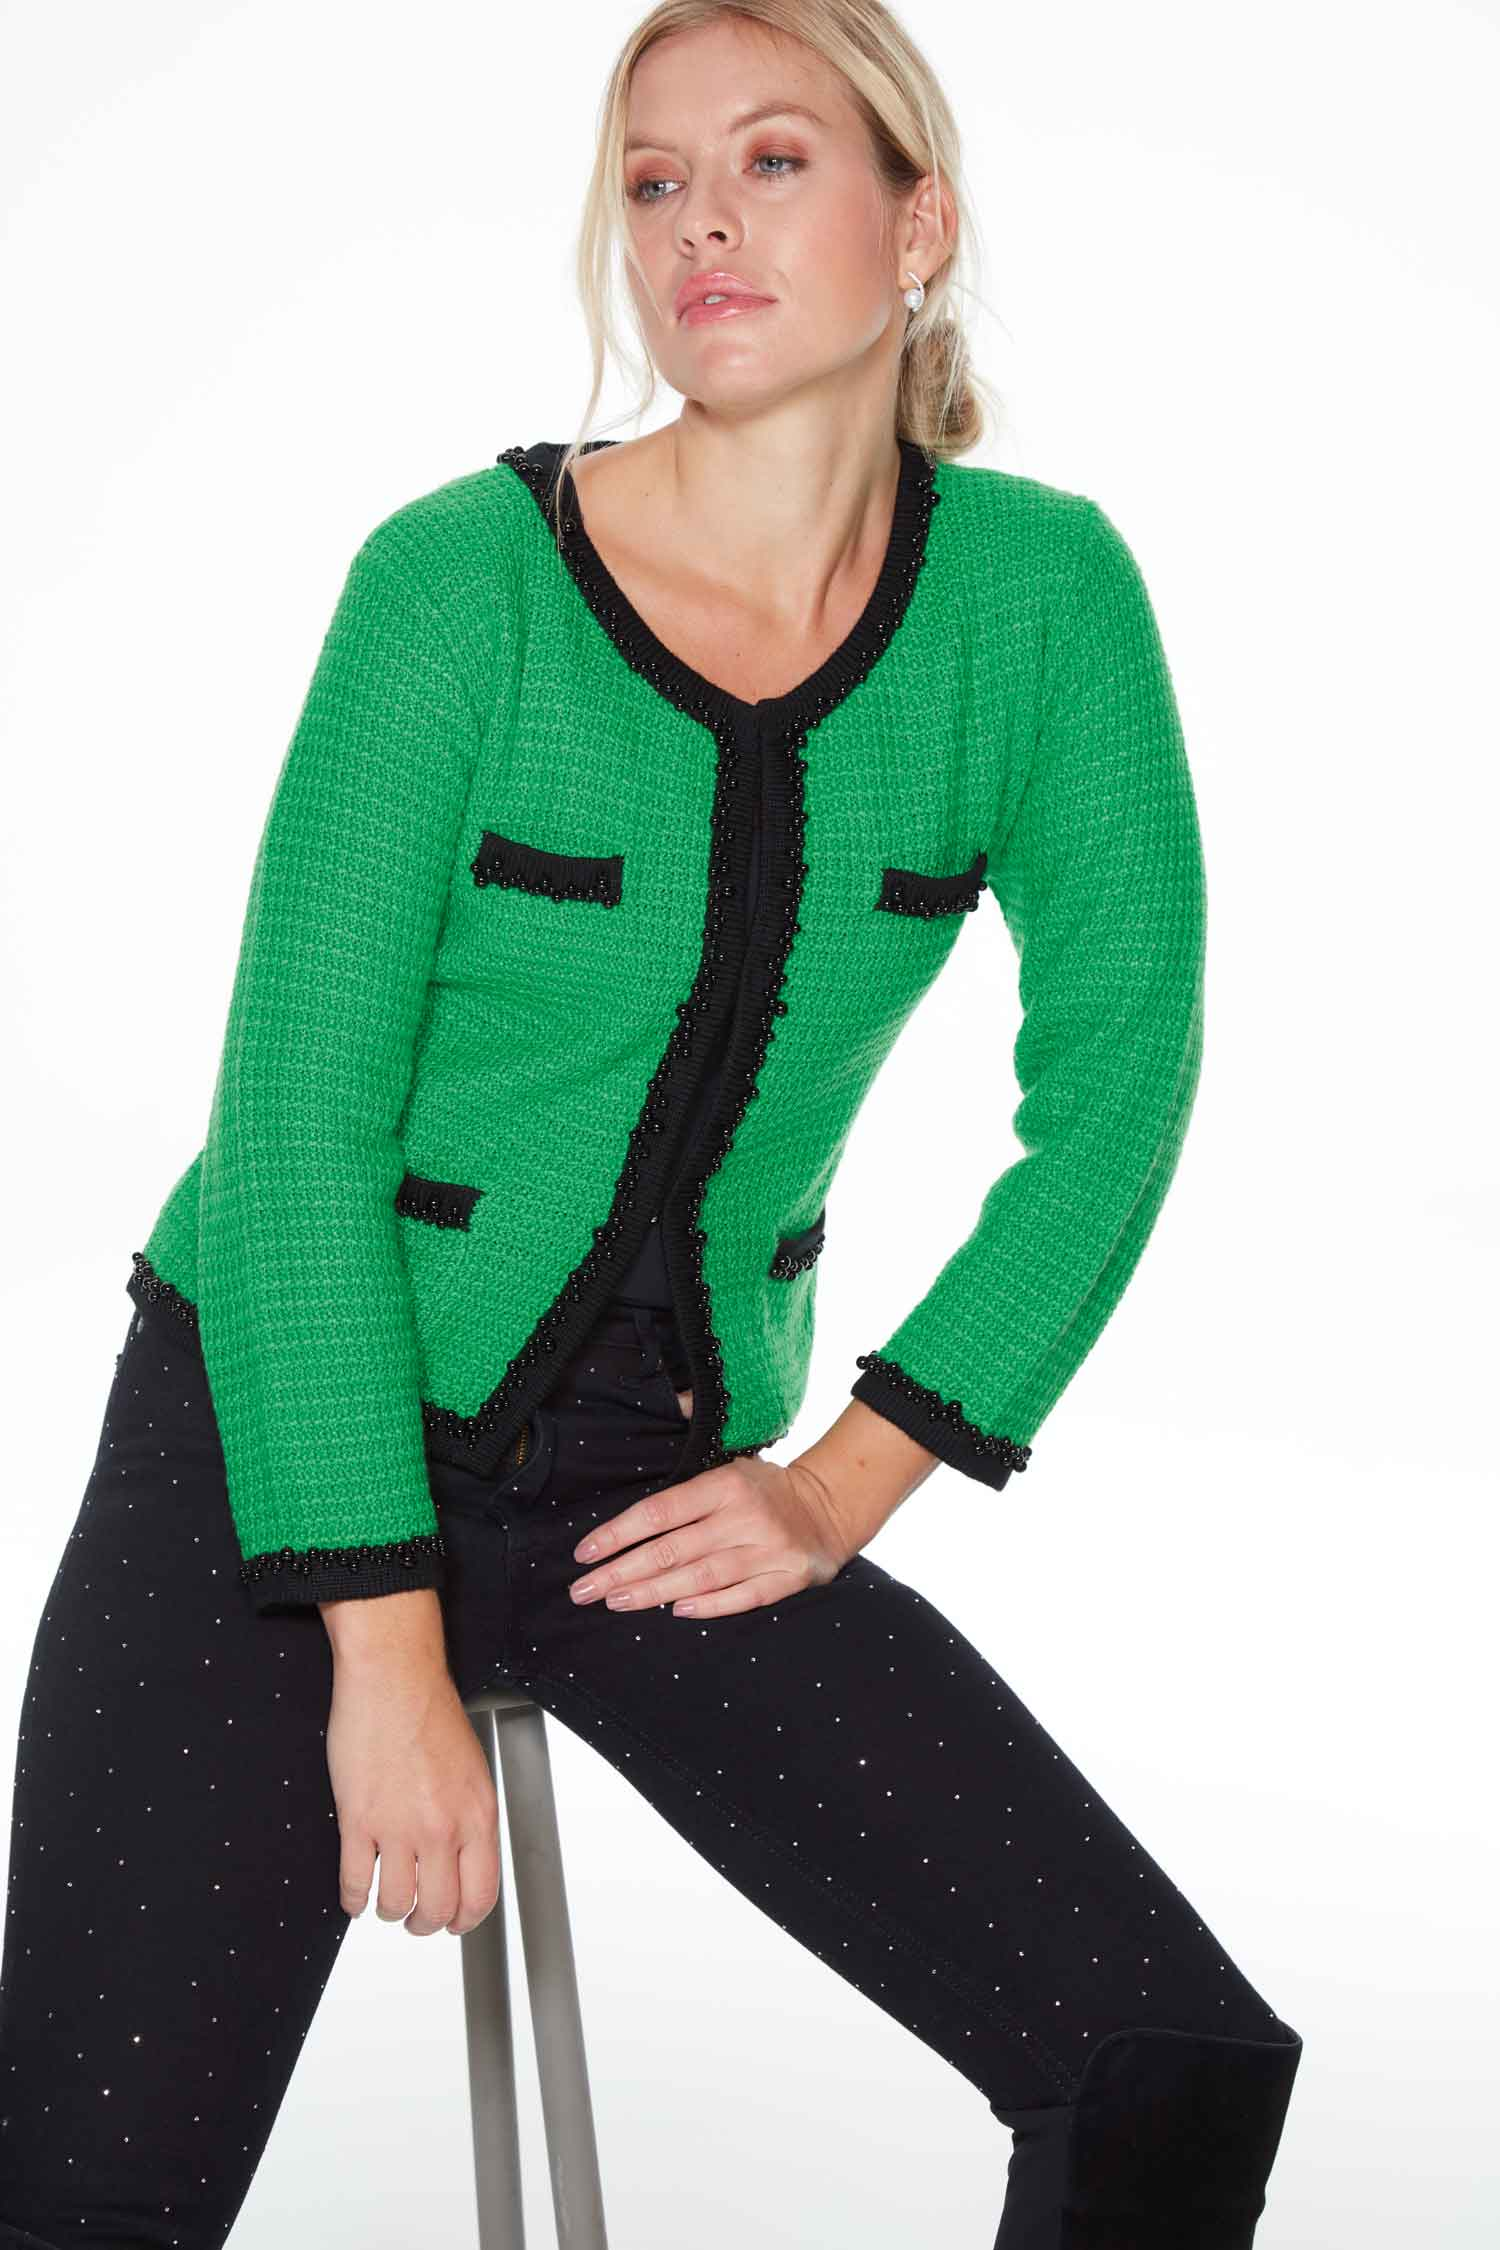 green Anya Jacket by Sally Allen - inspired by the legendary Coco Chanel